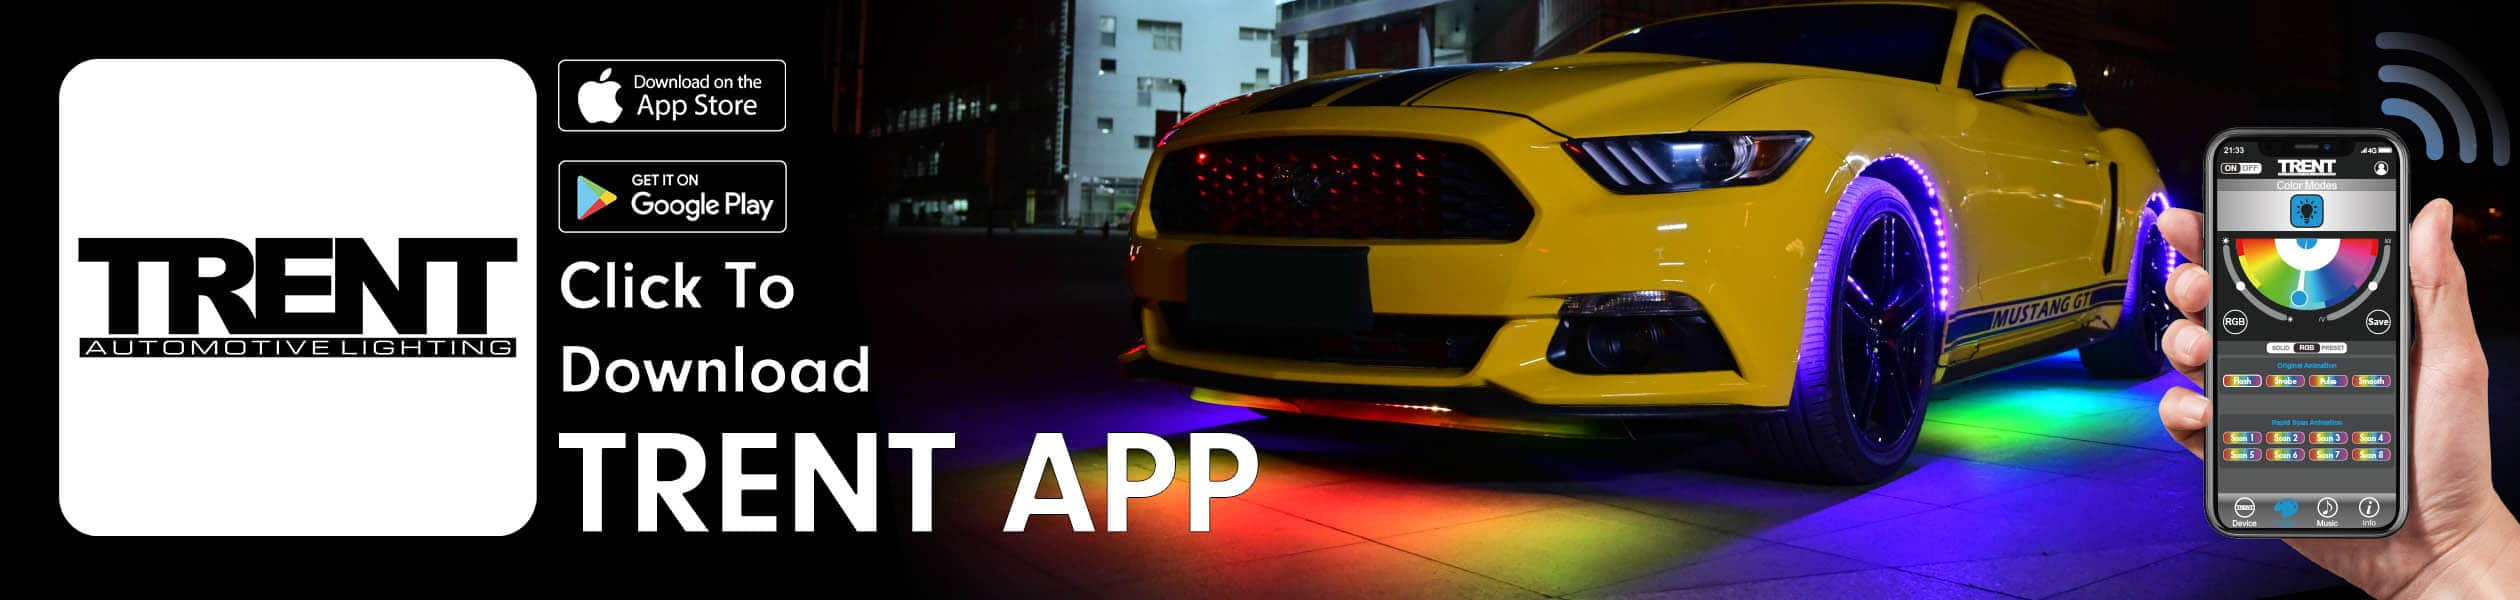 Auto LED APP Bluetooth Smart Lighting Download